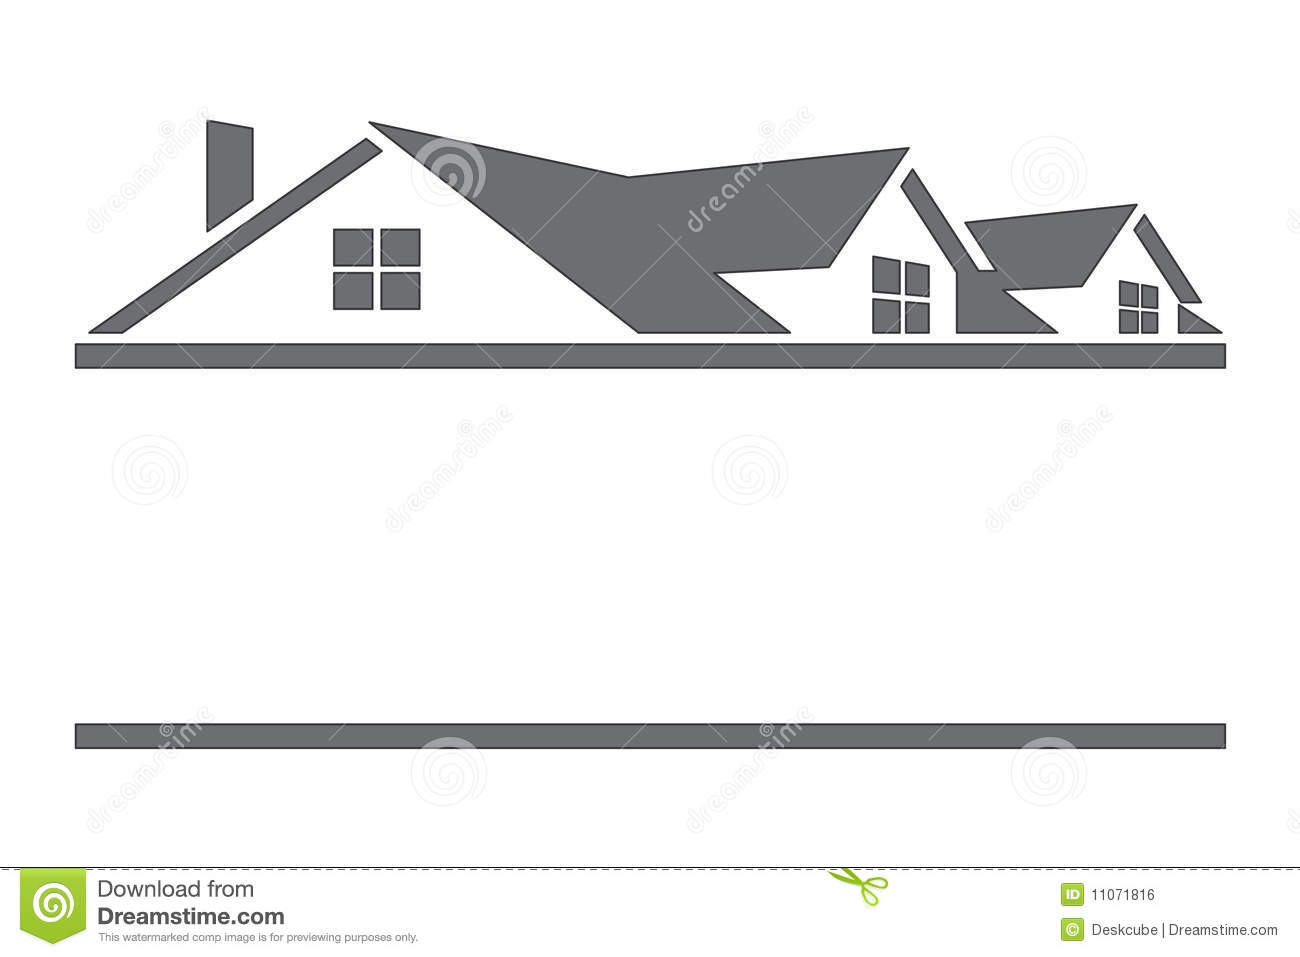 Houses And Roofs Royalty Free Stock Image - Image: 11071816